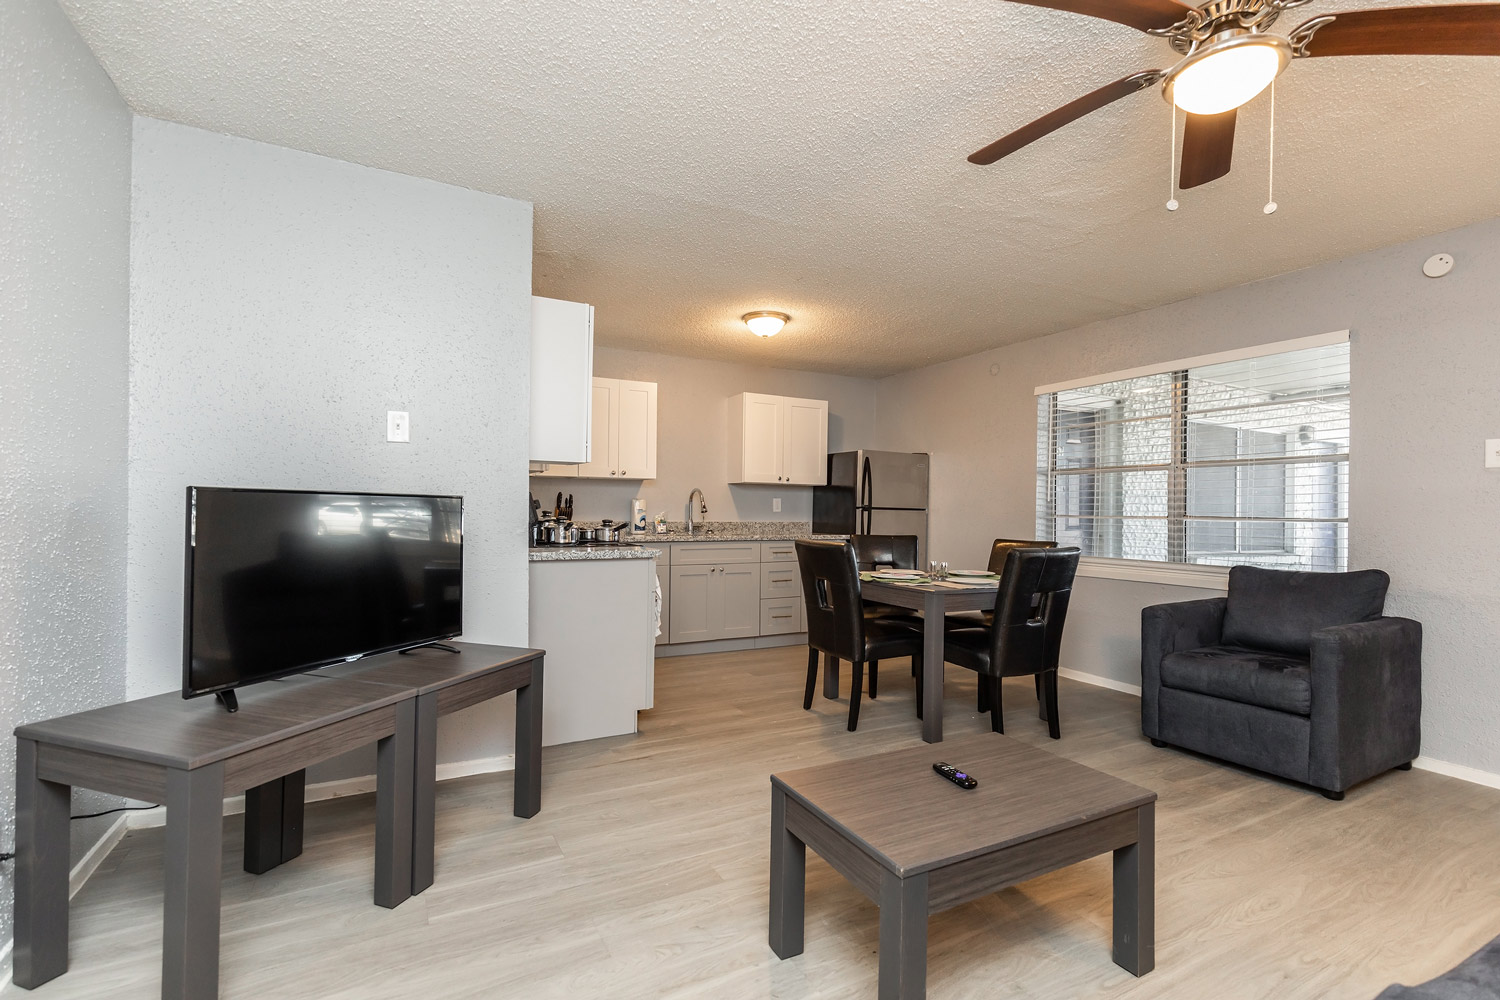 Spacious Apartments at The Five Points at Texas Apartments in Texas City, Texas